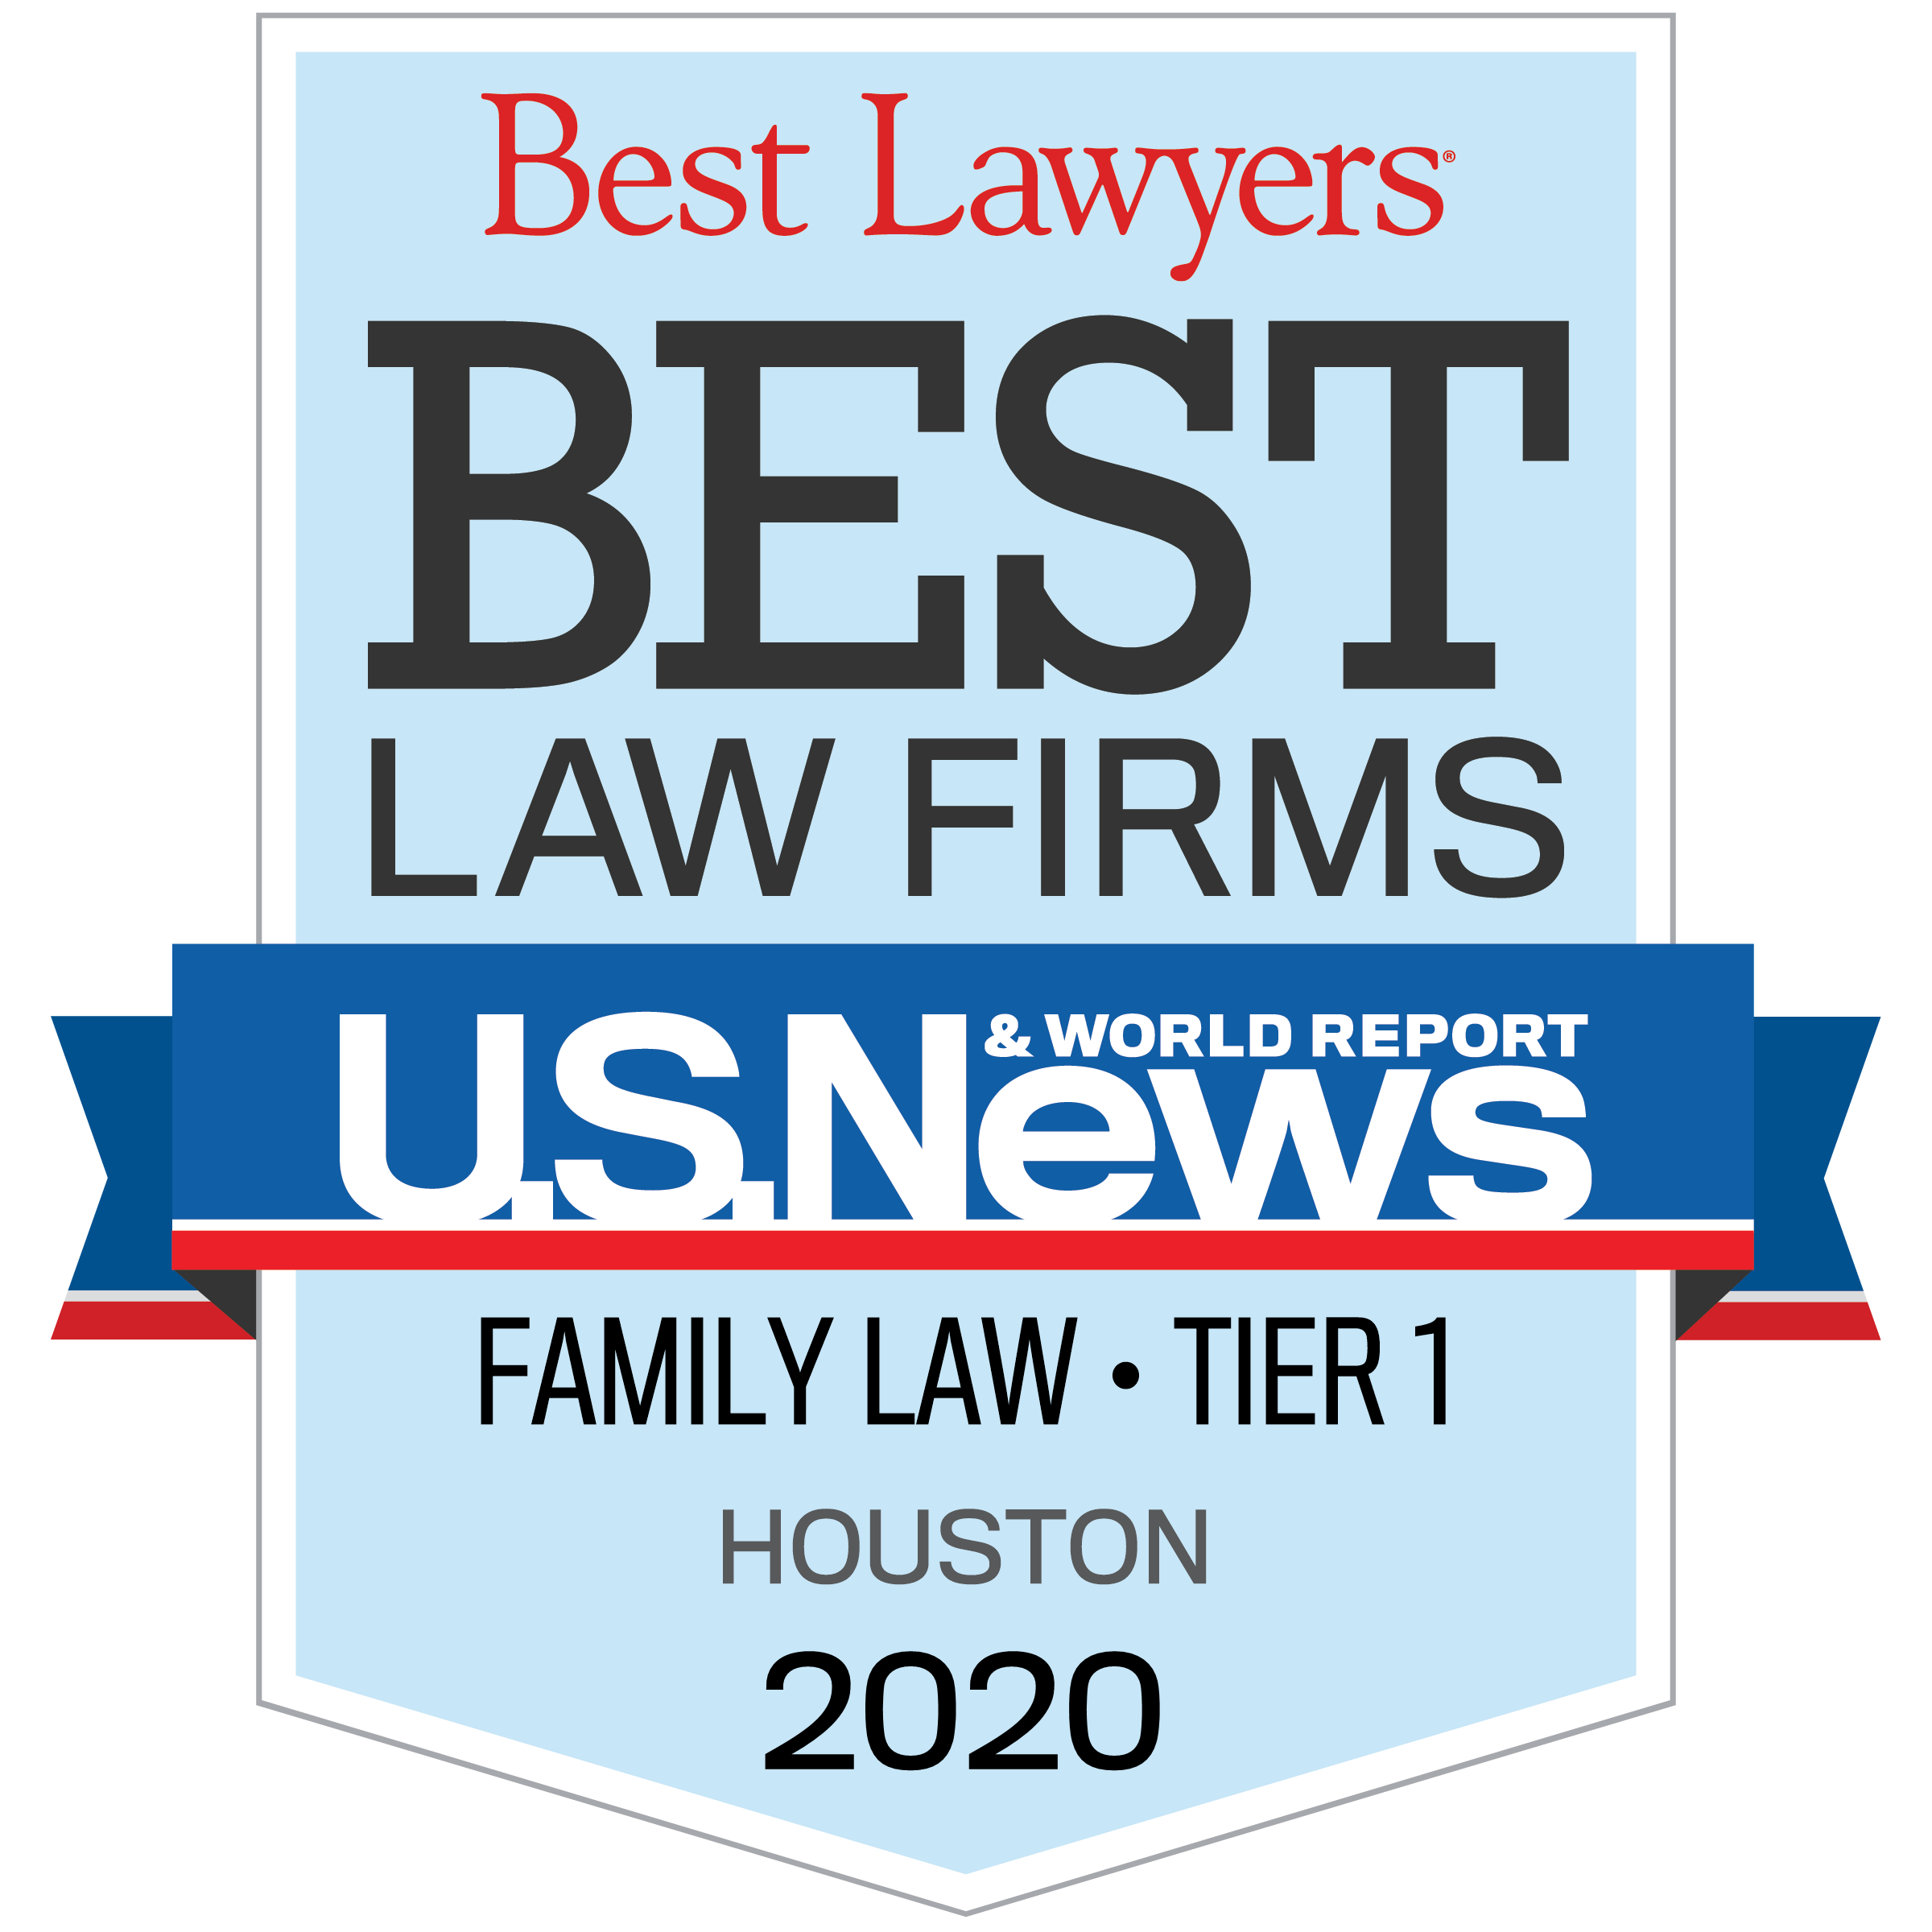 Best Lawyers Best Law Firm Family Law Houston 2020